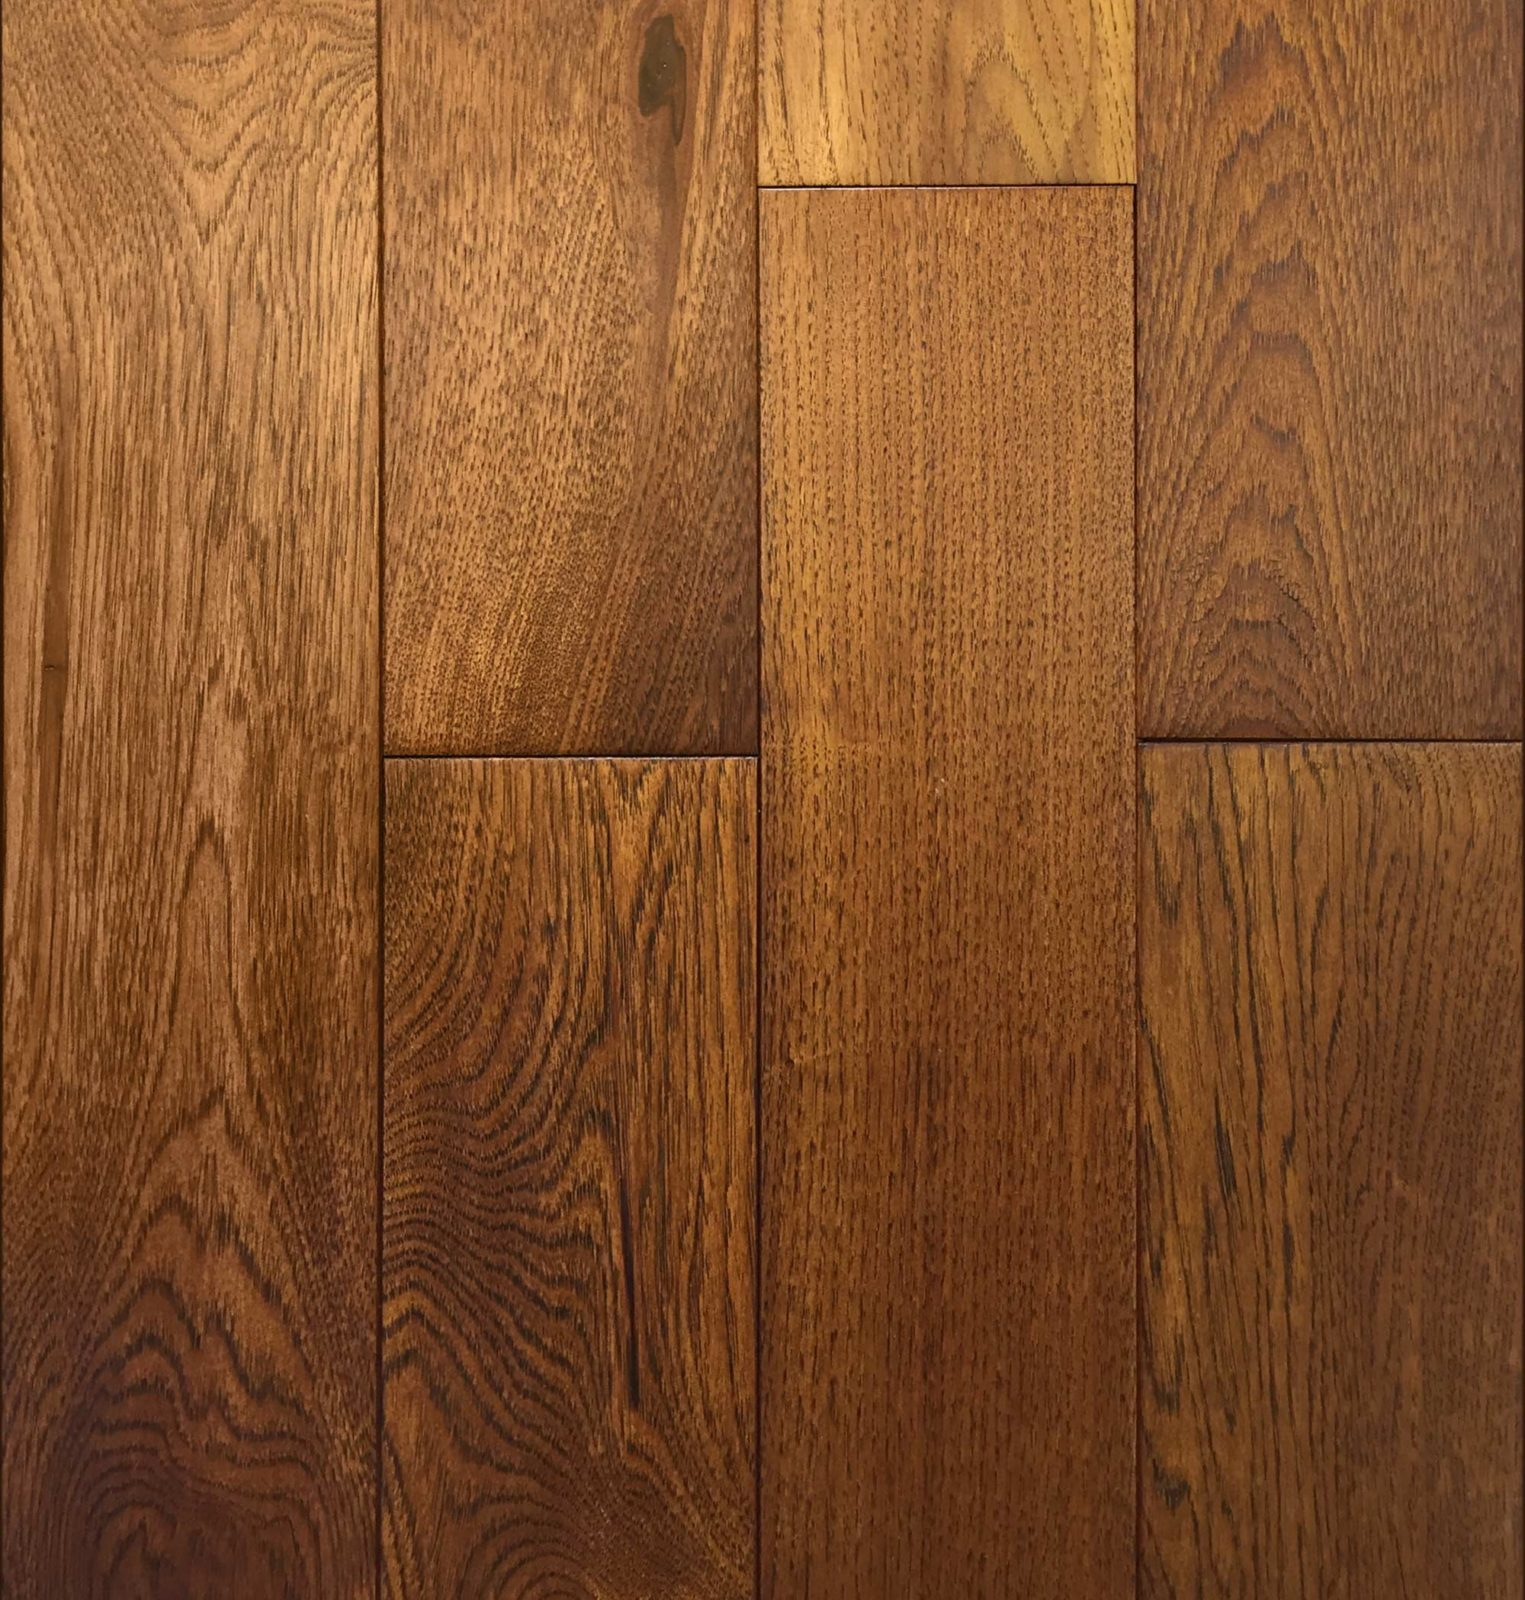 tile scraped and wood hickory engineered maple take home hand wide modena floors sample legend gallery distressed hardwood plank flooring of